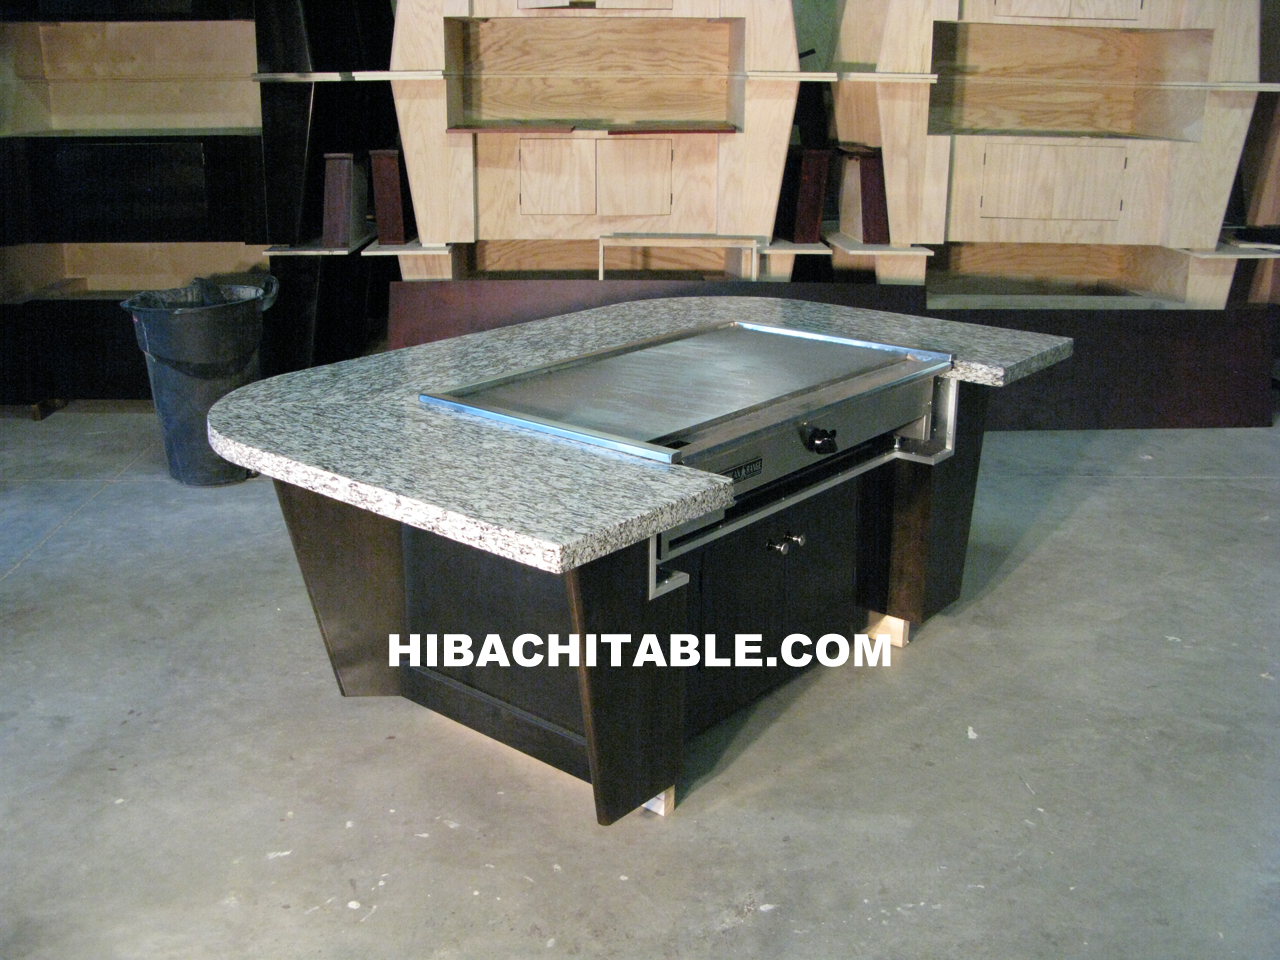 Uncategorized Teppanyaki Home hibachi table teppanyaki teppan tg 8 ocean mist